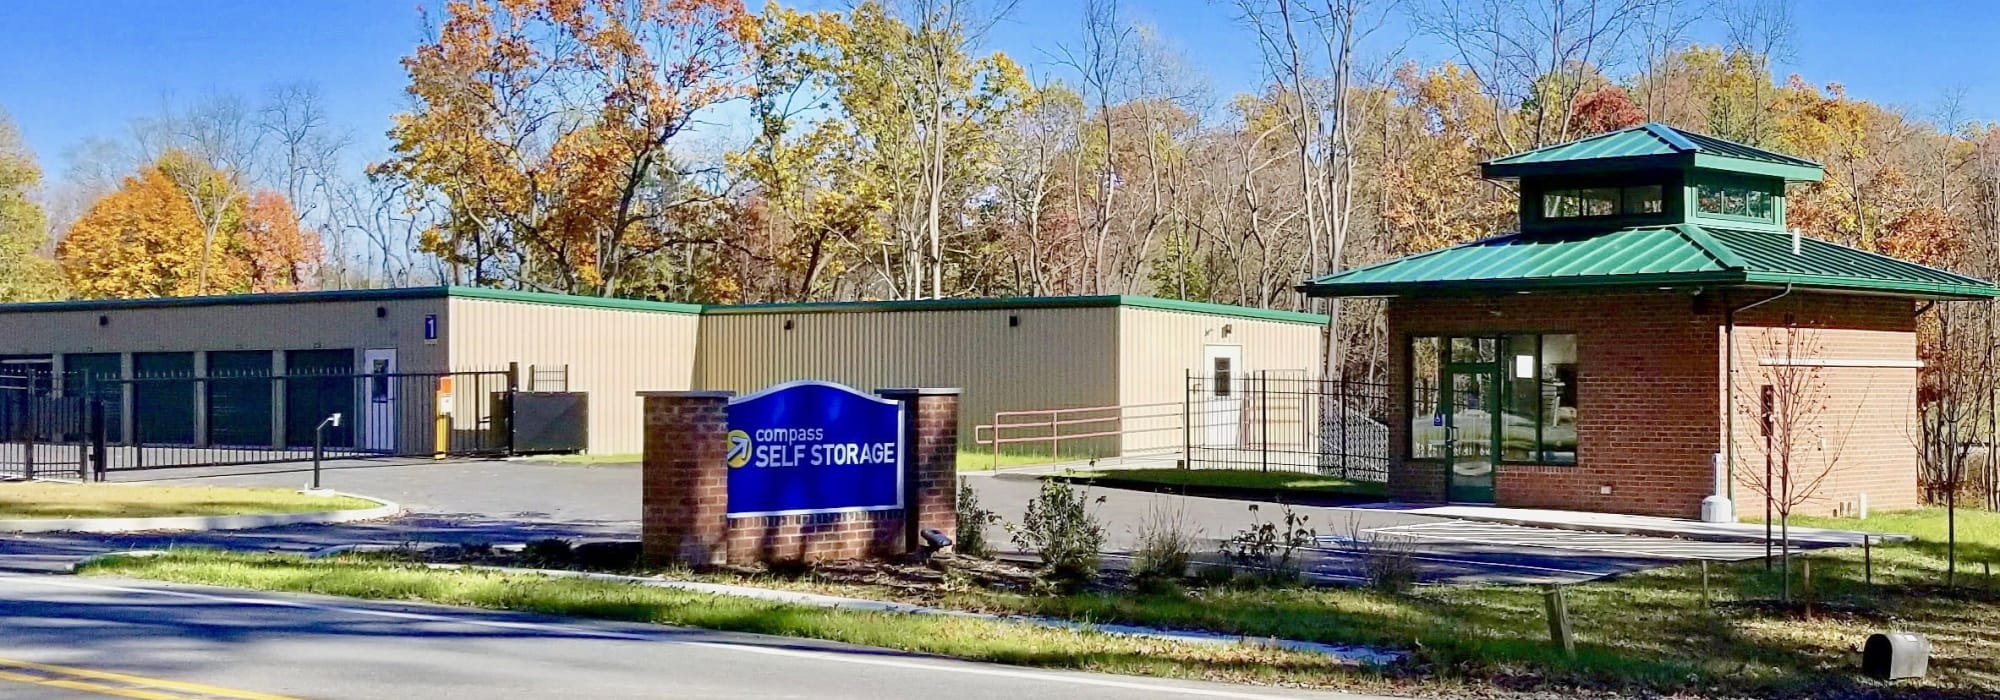 Self storage in Sewickley PA